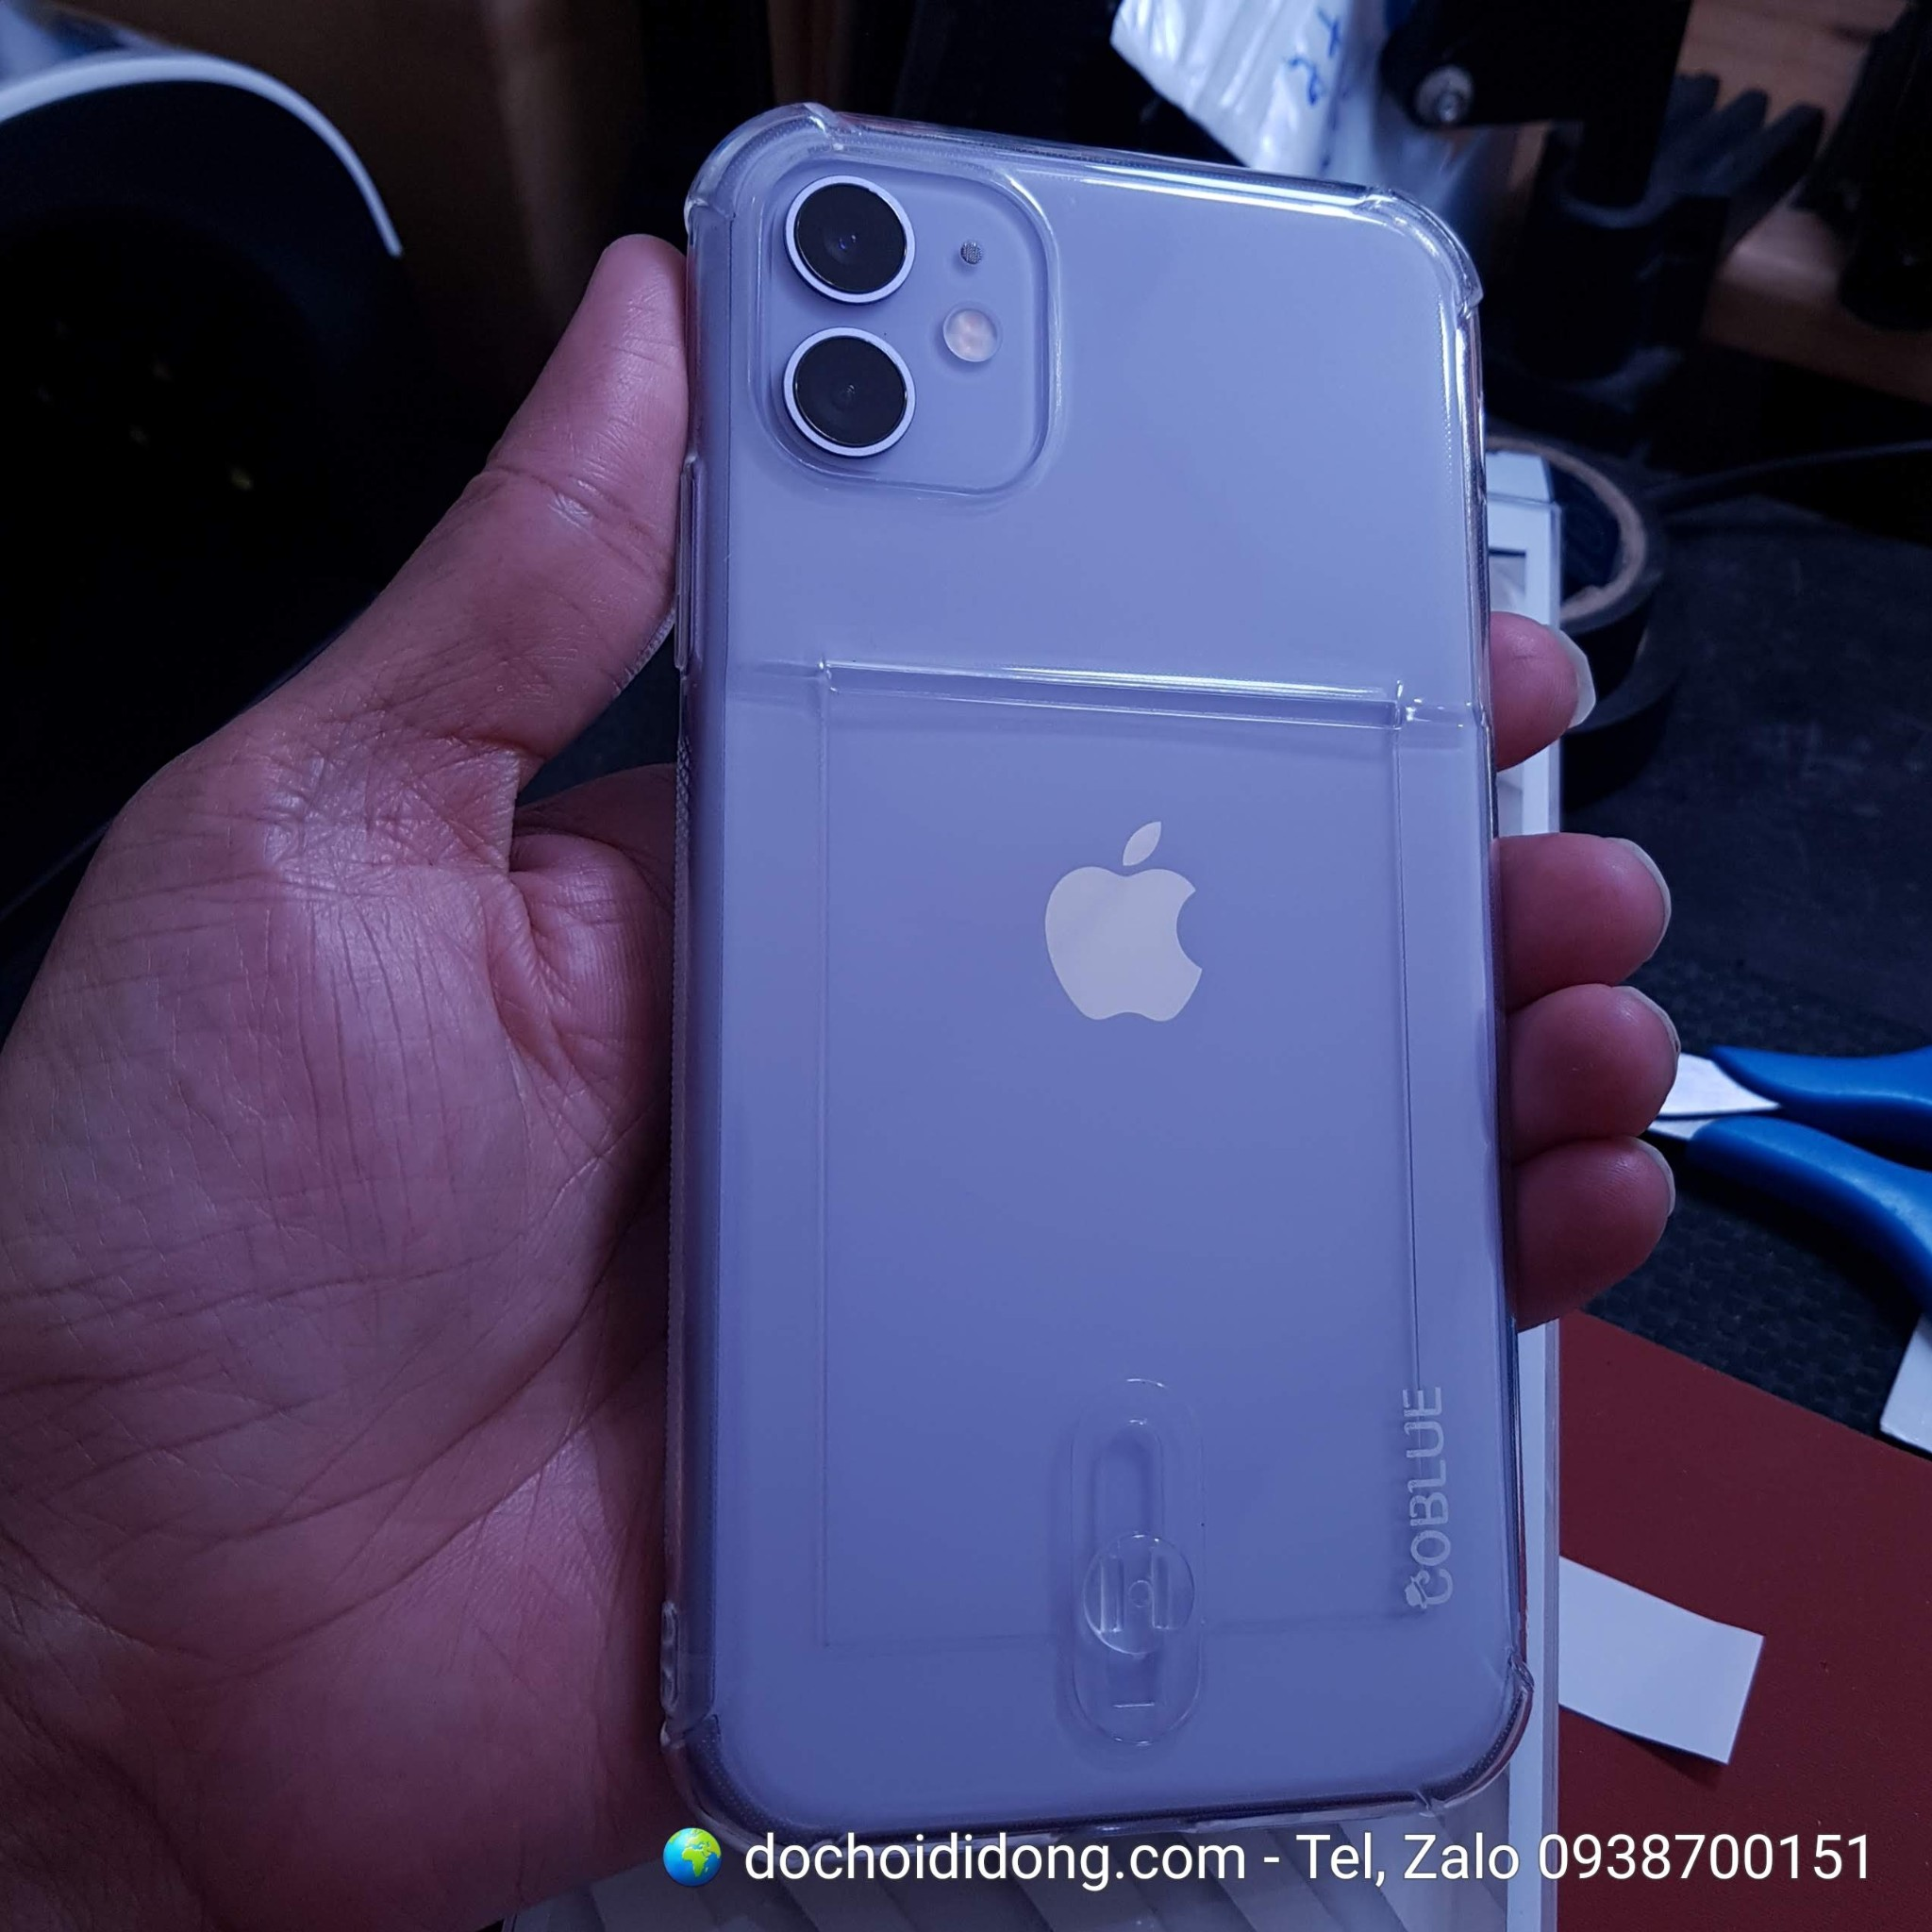 combo-op-lung-nhet-the-coblue-kem-cuong-luc-cho-iphone-11-cac-dong